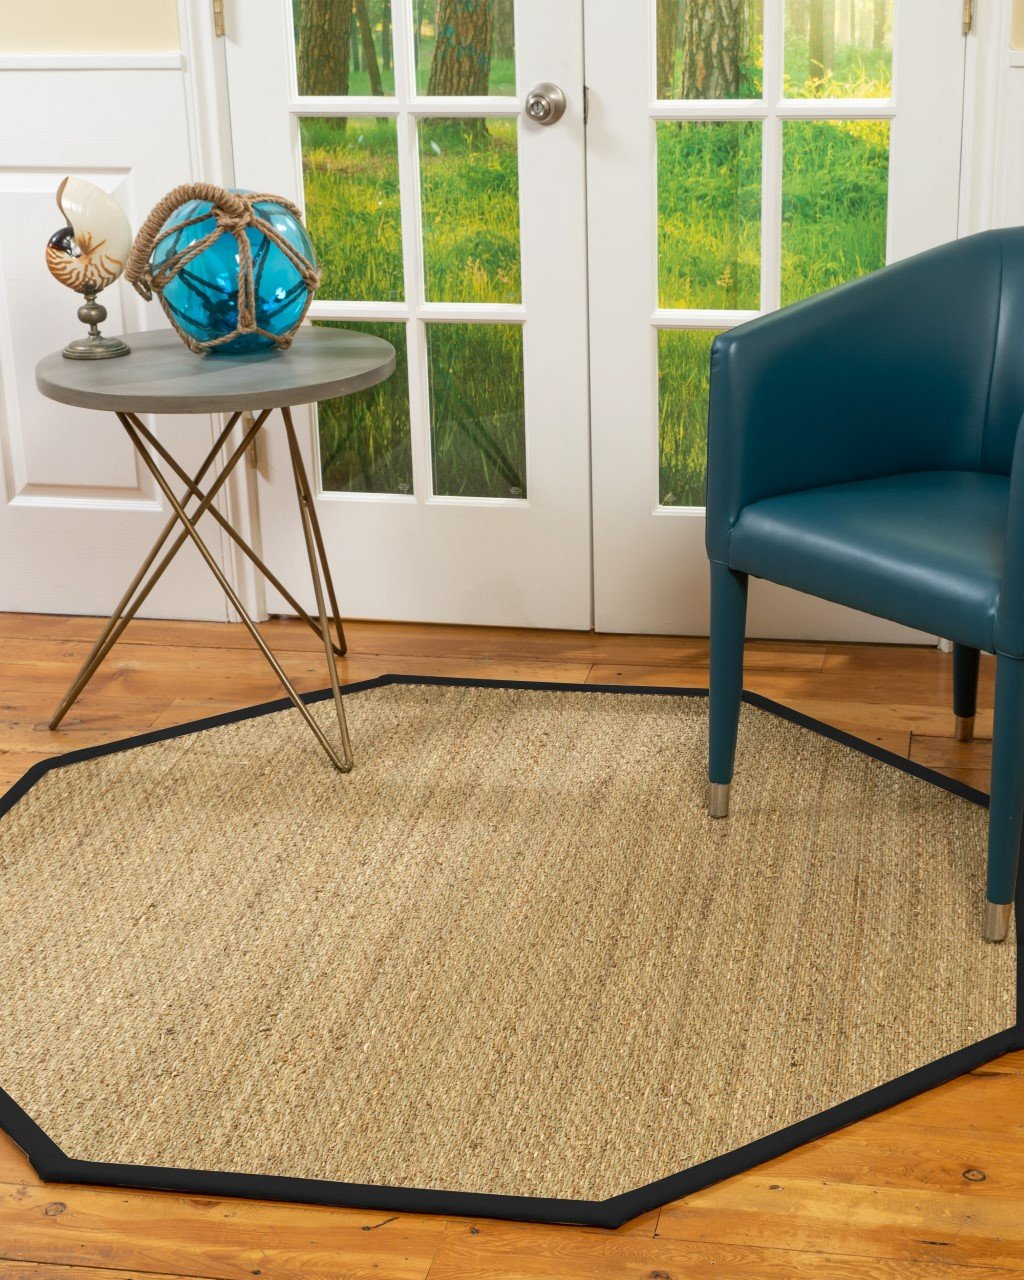 Mayfair Seagrass Rug w/ Extra Wide Black Border, 10' Octagon Product Image